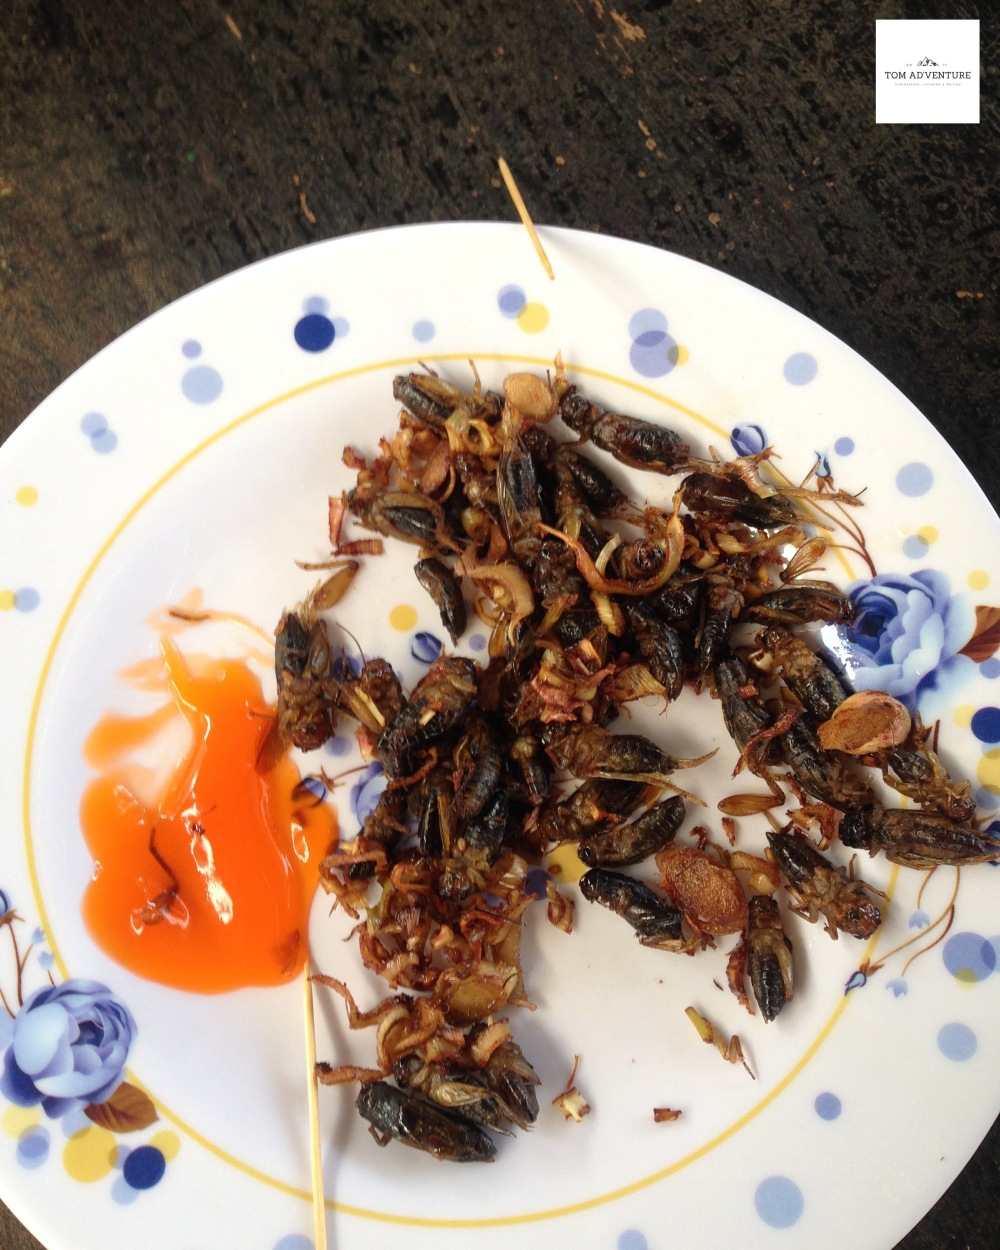 Insects to eat in Dalat